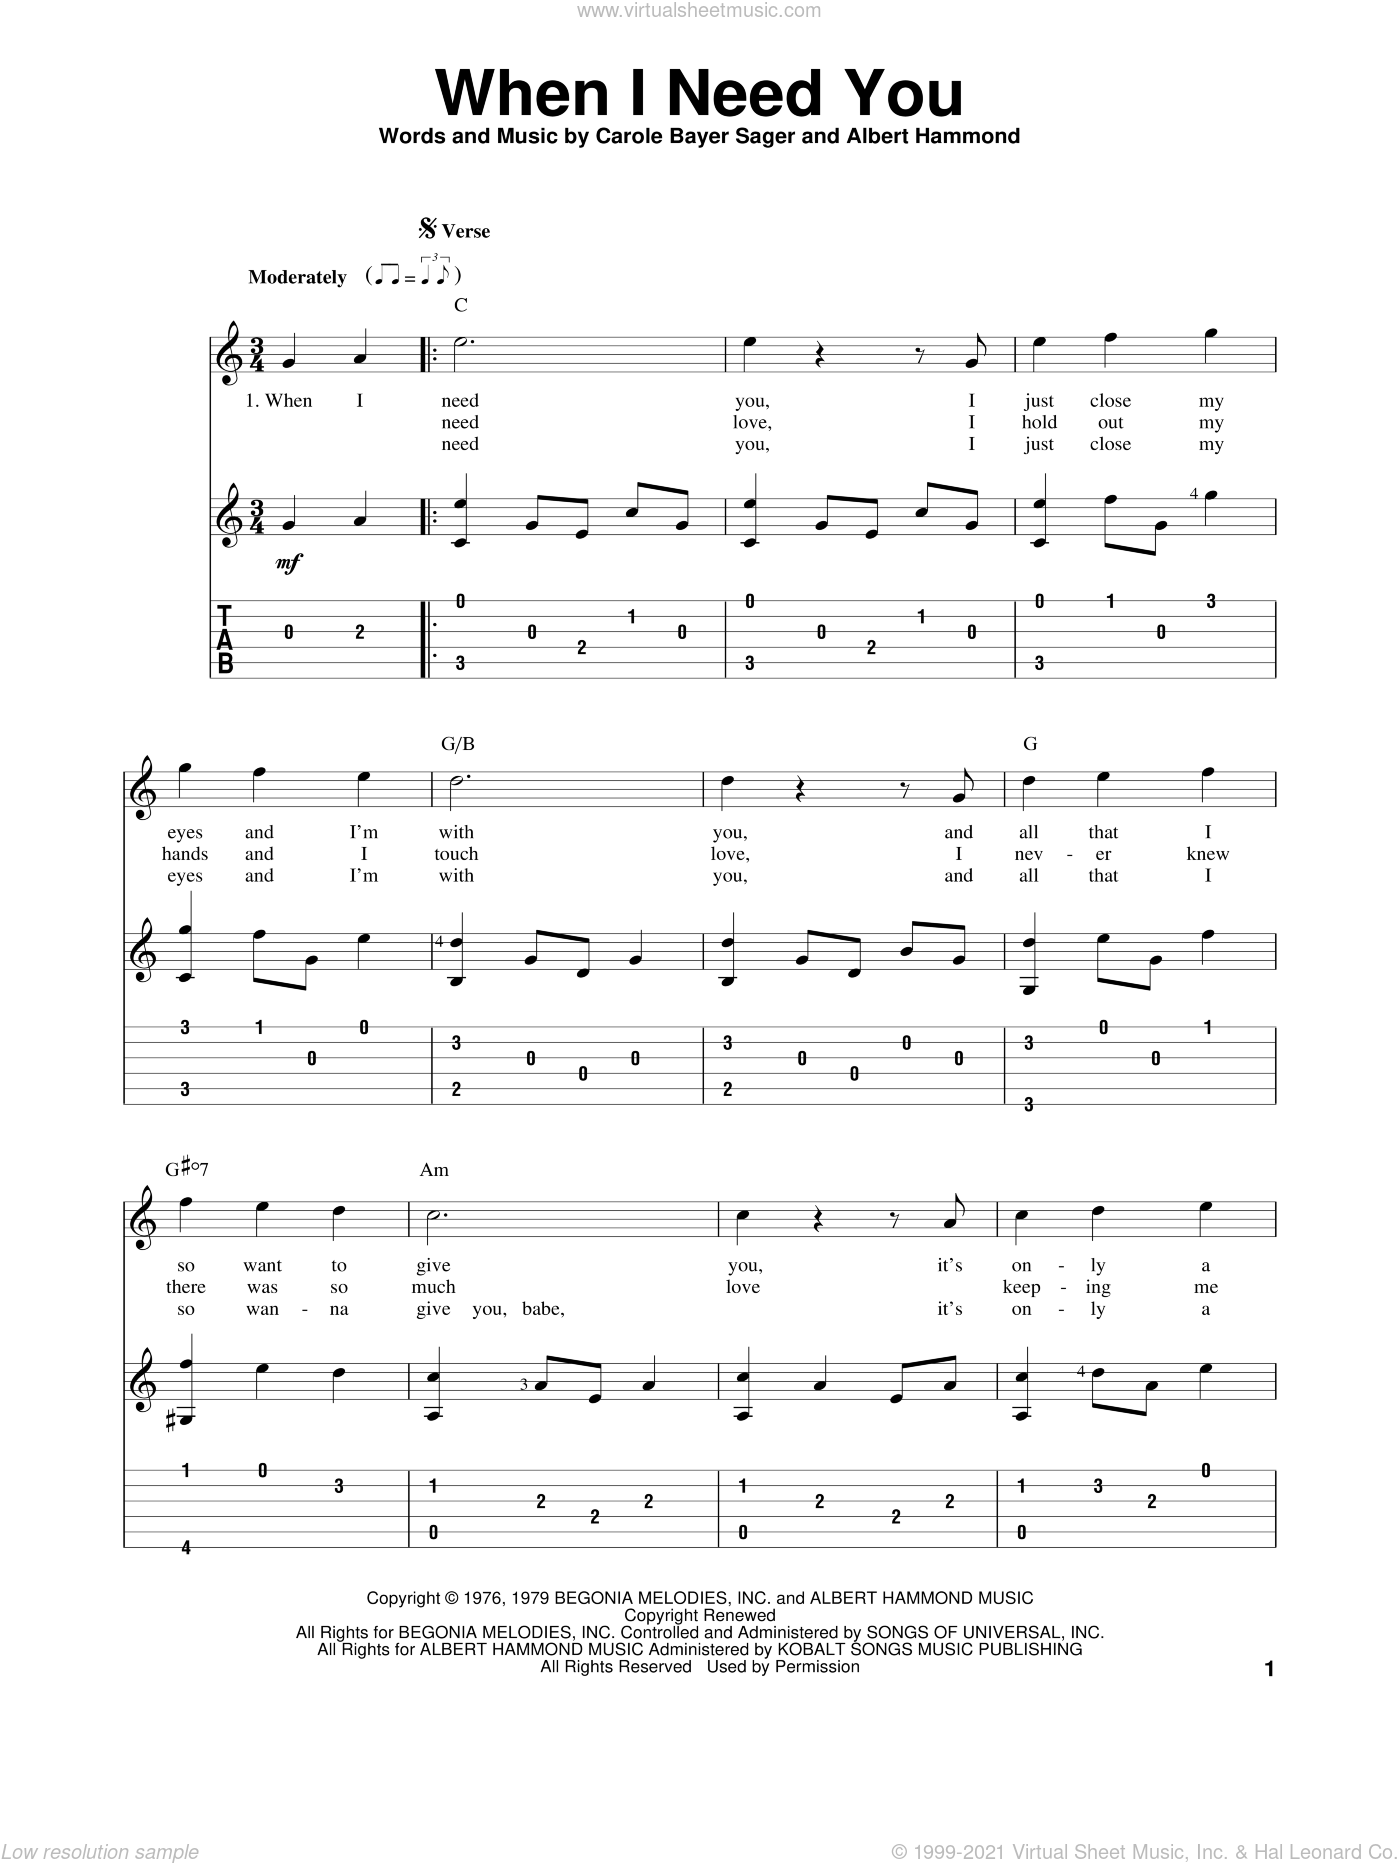 When I Need You sheet music for guitar solo by Carole Bayer Sager, Albert Hammond and Leo Sayer. Score Image Preview.